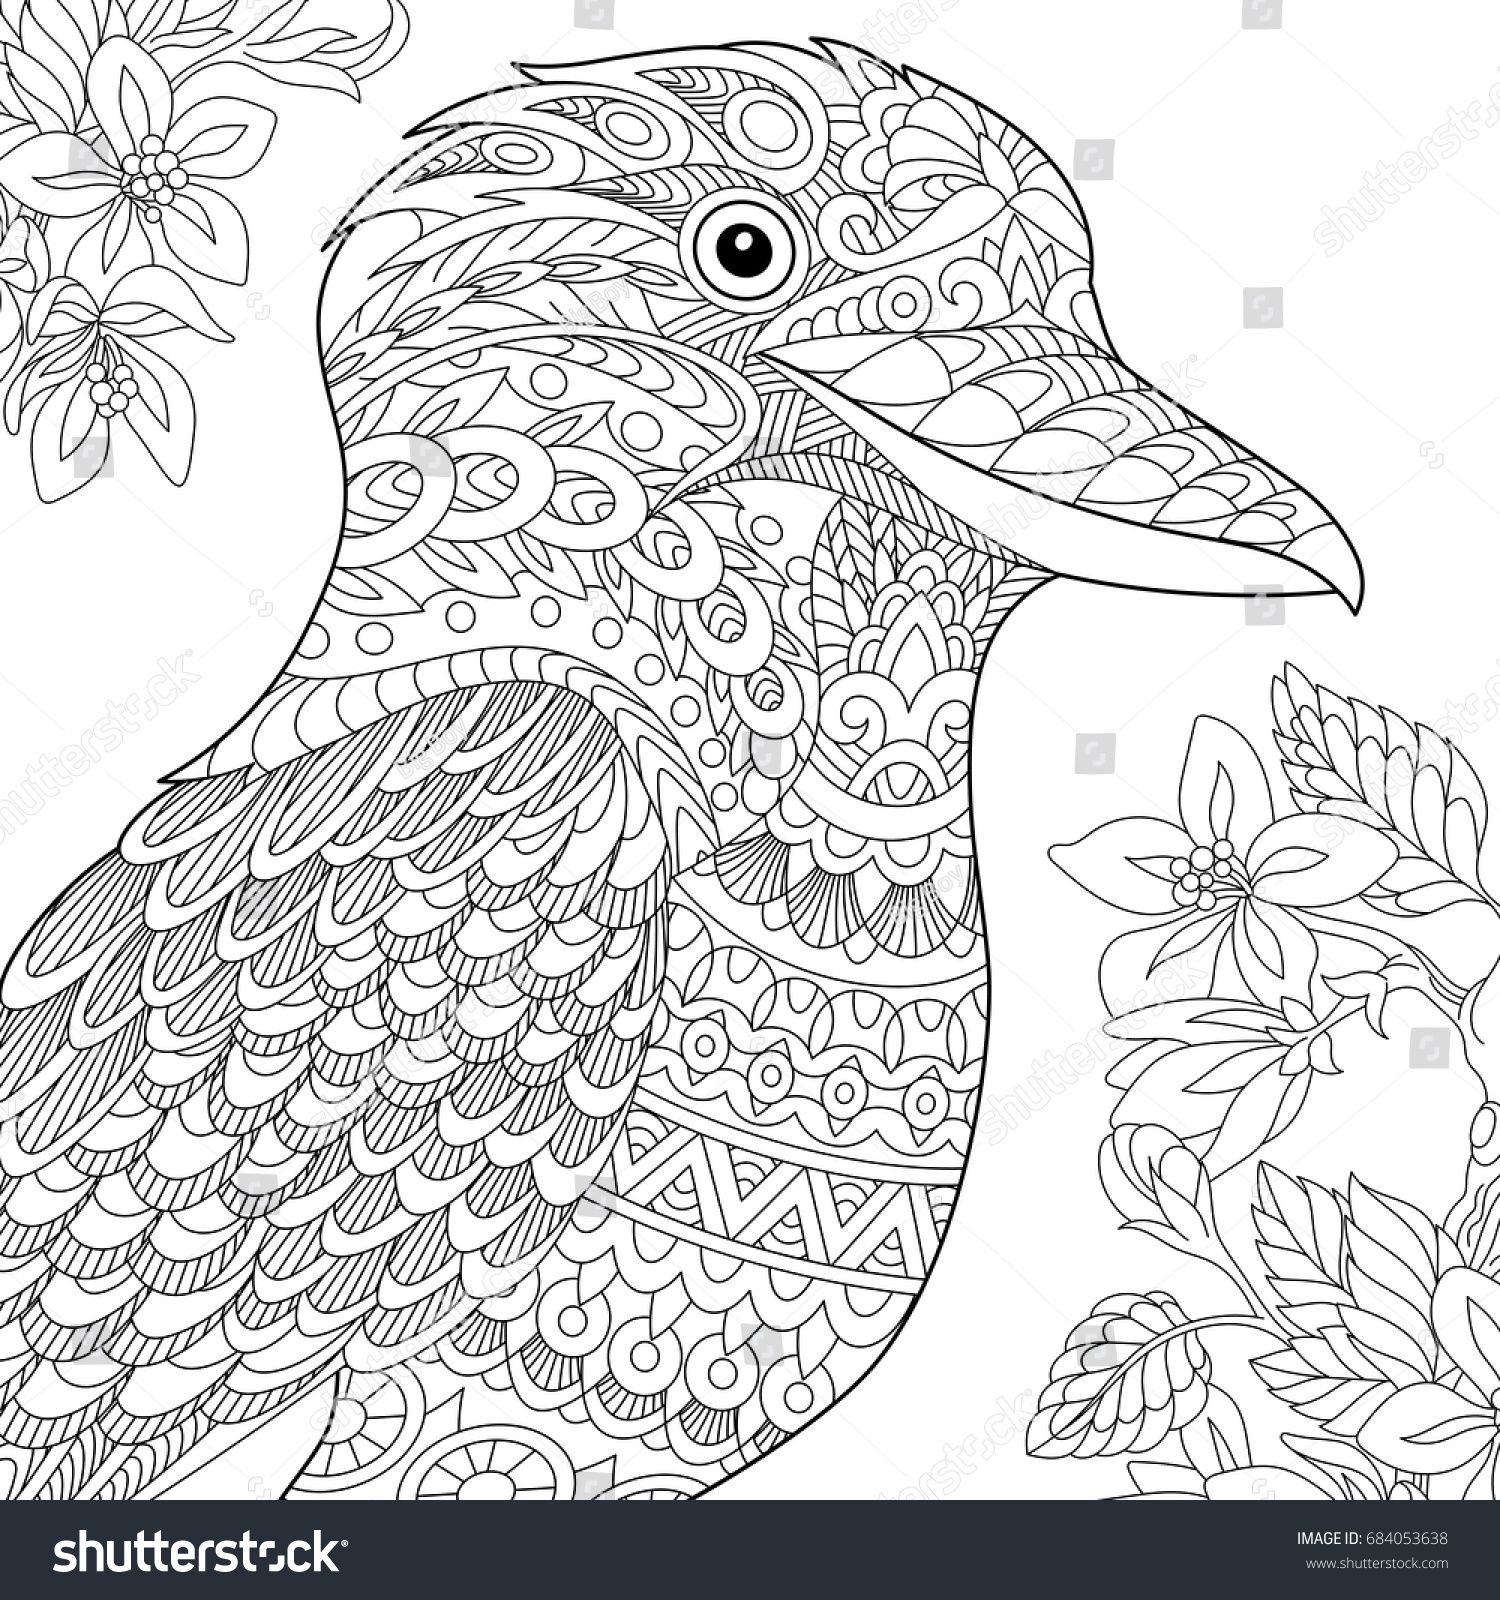 Coloring Page Australian Kookaburra Bird Freehand Sketch Drawing For Adult Antistress Book In Zentangle Style